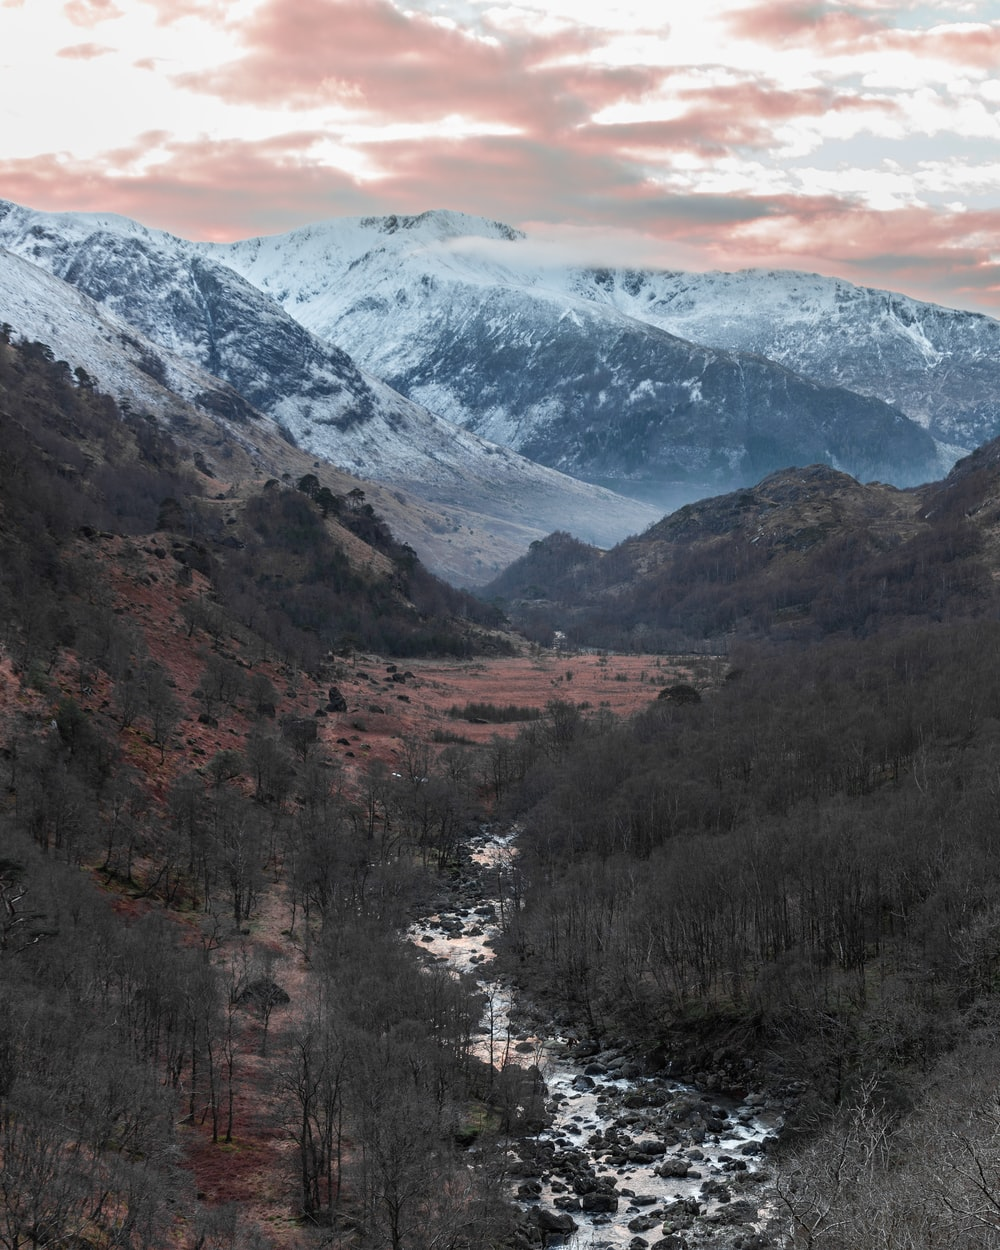 photography of river between trees near snow capped mountain during daytime